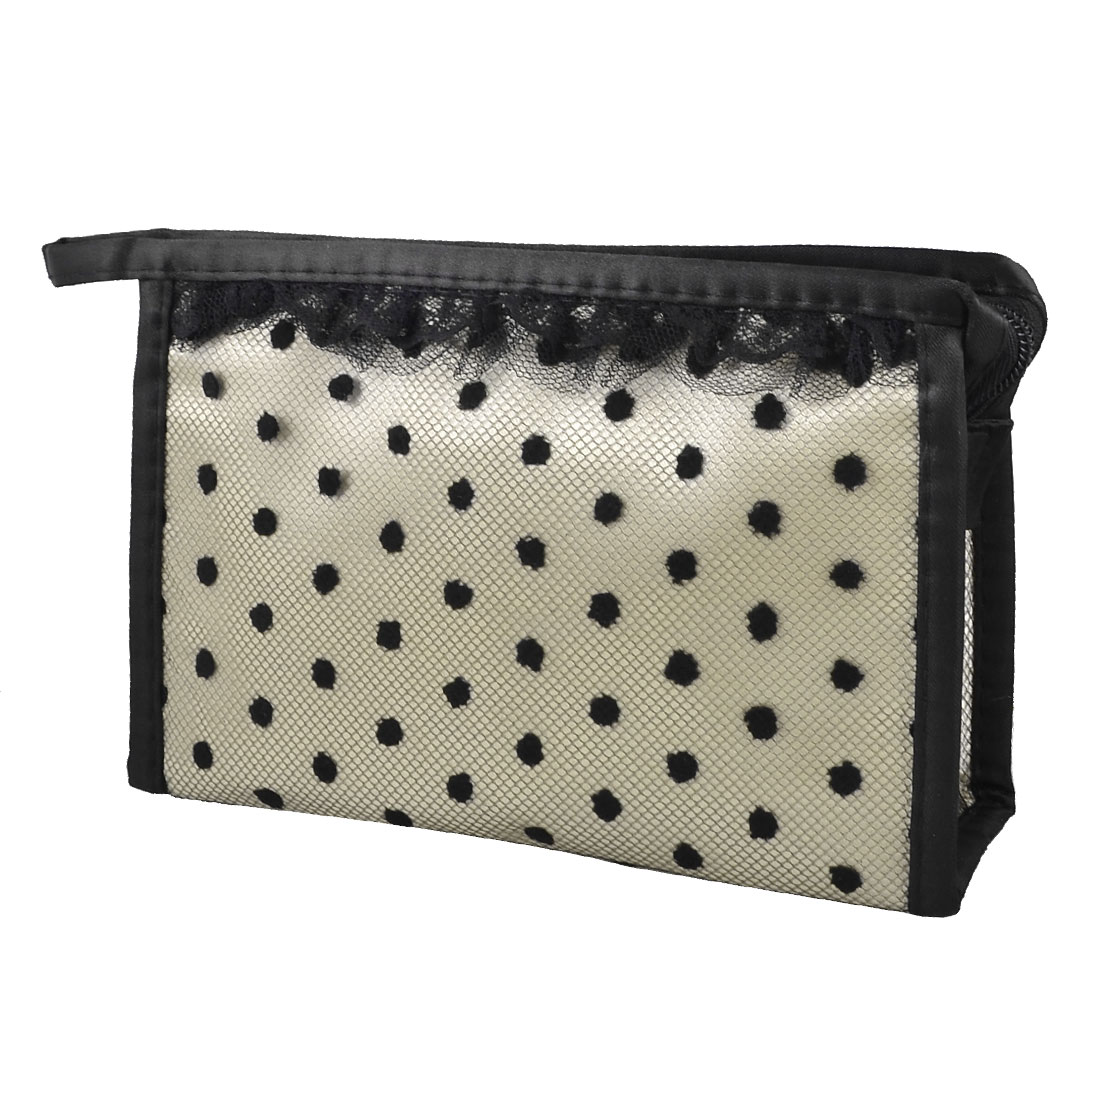 Zippered Rectangle Lace Dots Meshy Make up Cosmetic Bag Case Pouch Light Gray Black